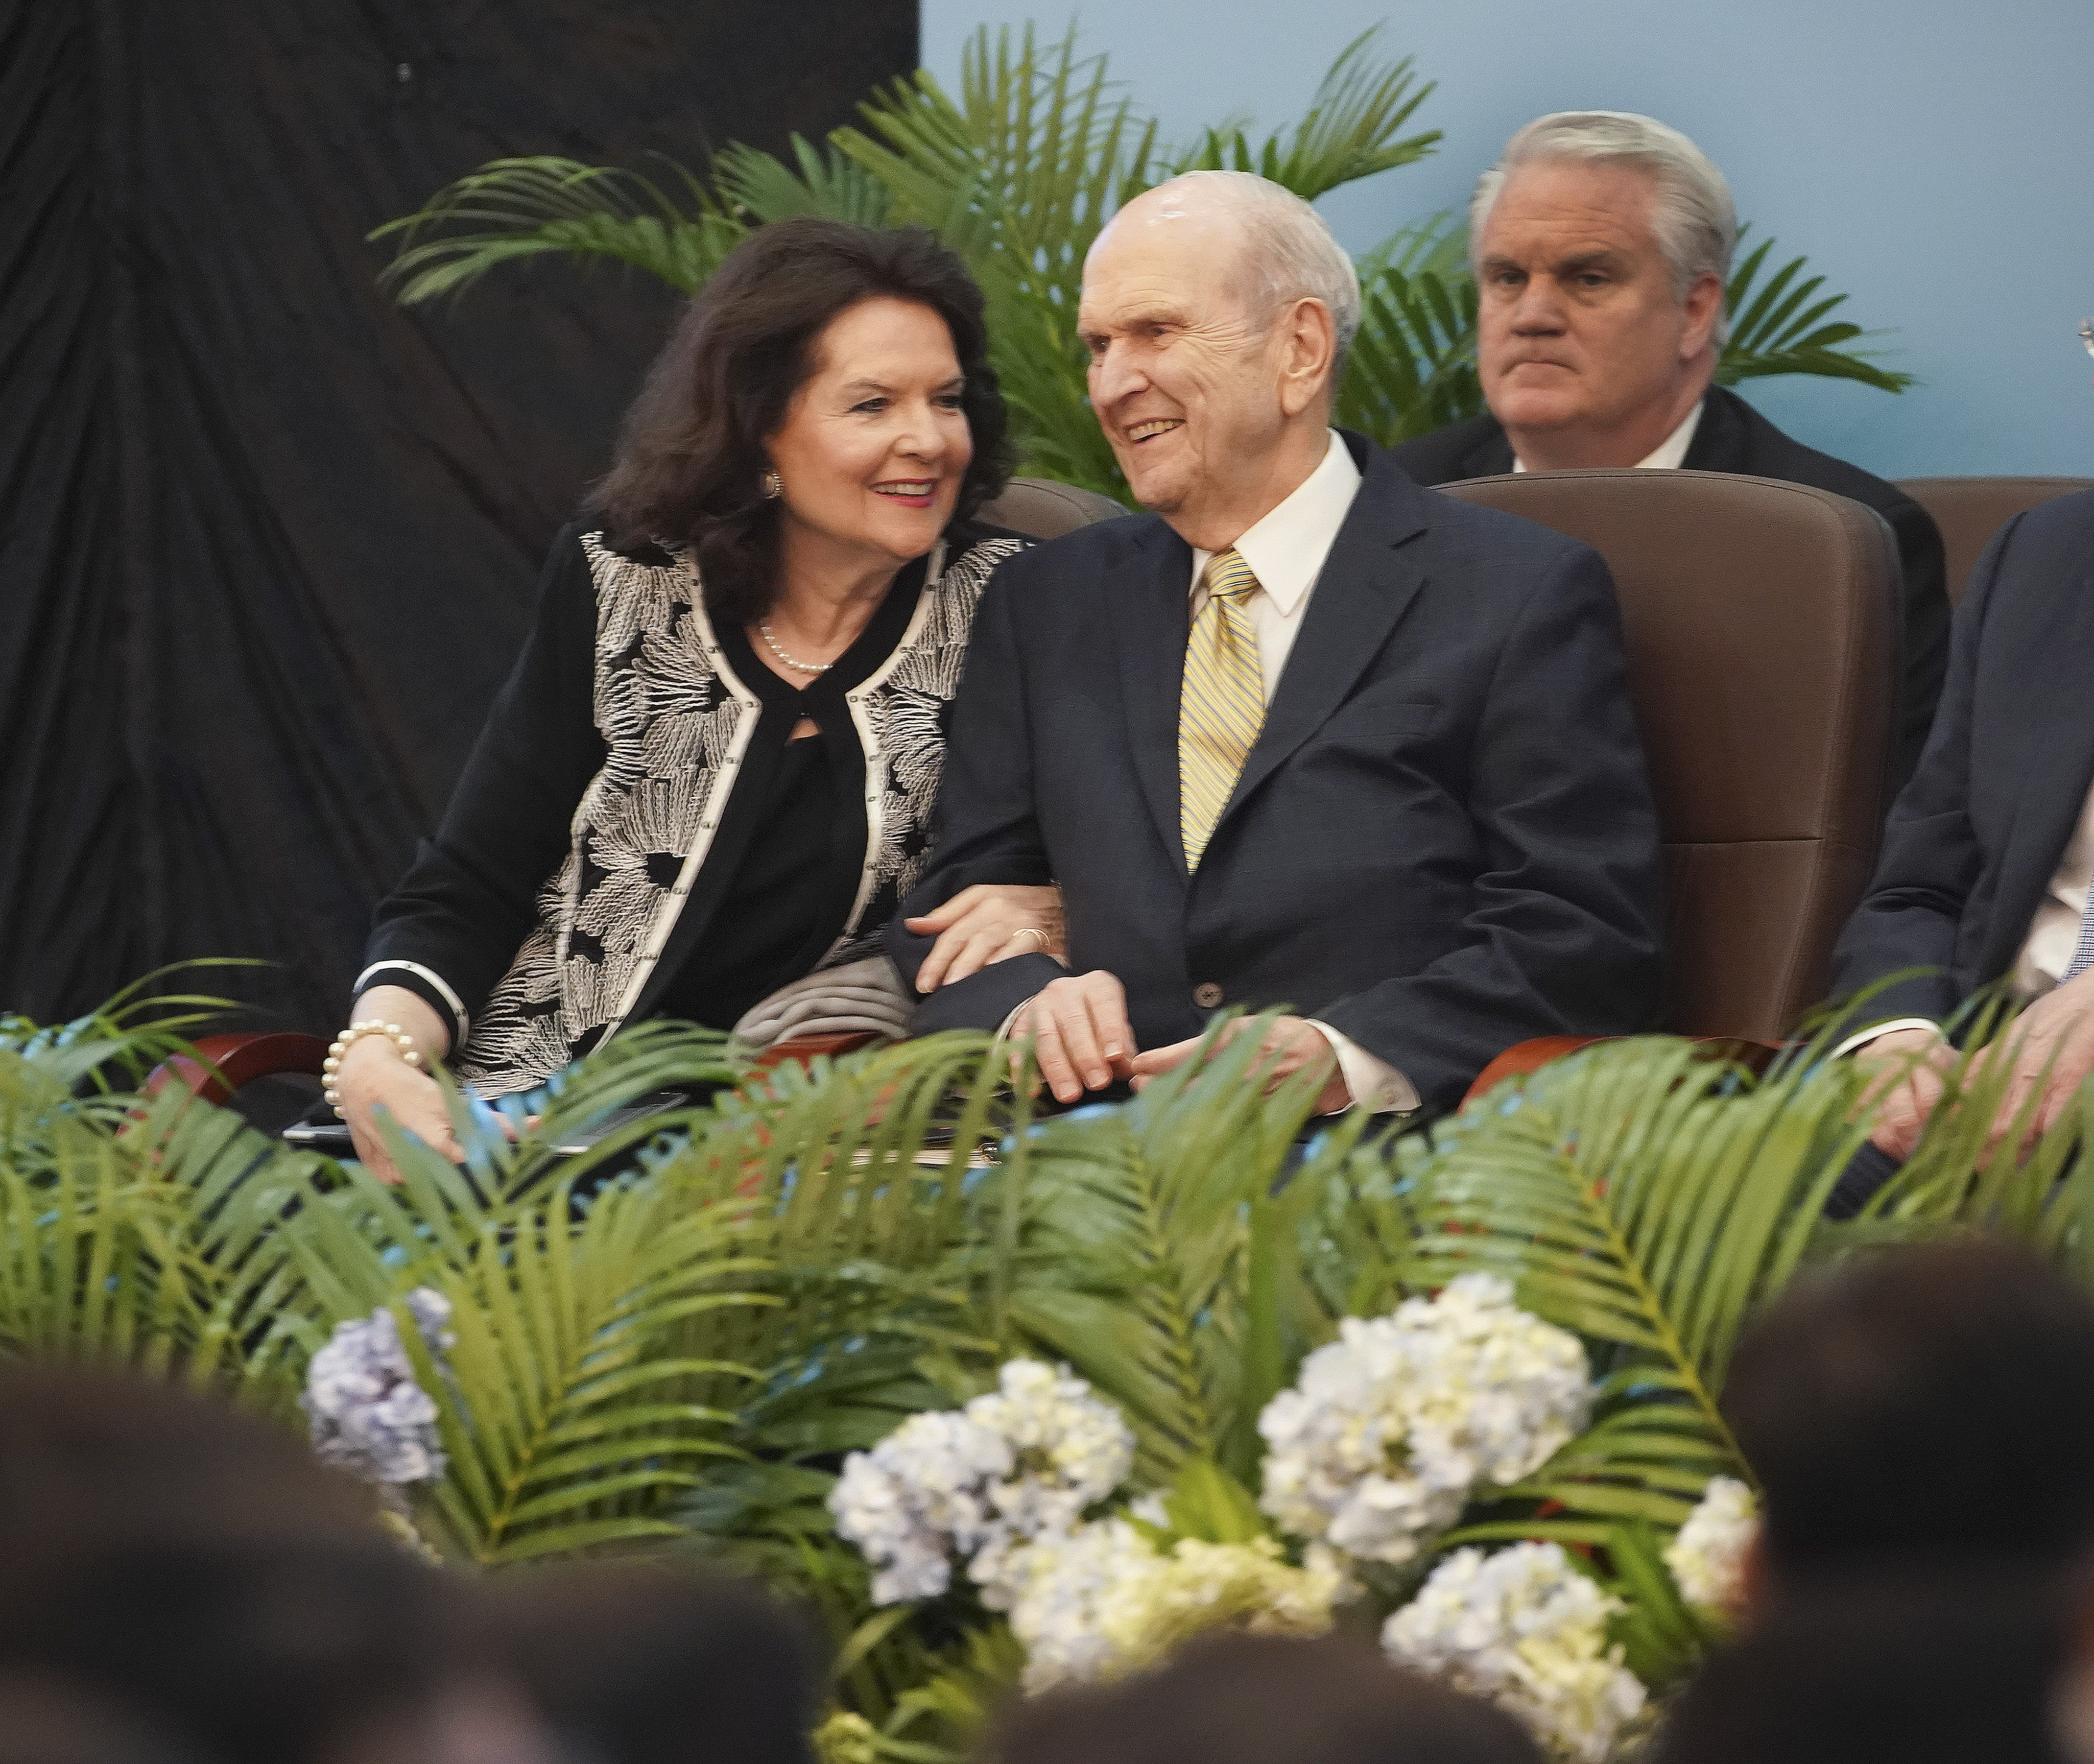 President Russell M. Nelson of The Church of Jesus Christ of Latter-day Saints and his wife, Sister Wendy Nelson, smile during a devotional in Ho Chi Minh City, Vietnam, on Nov. 18, 2019.